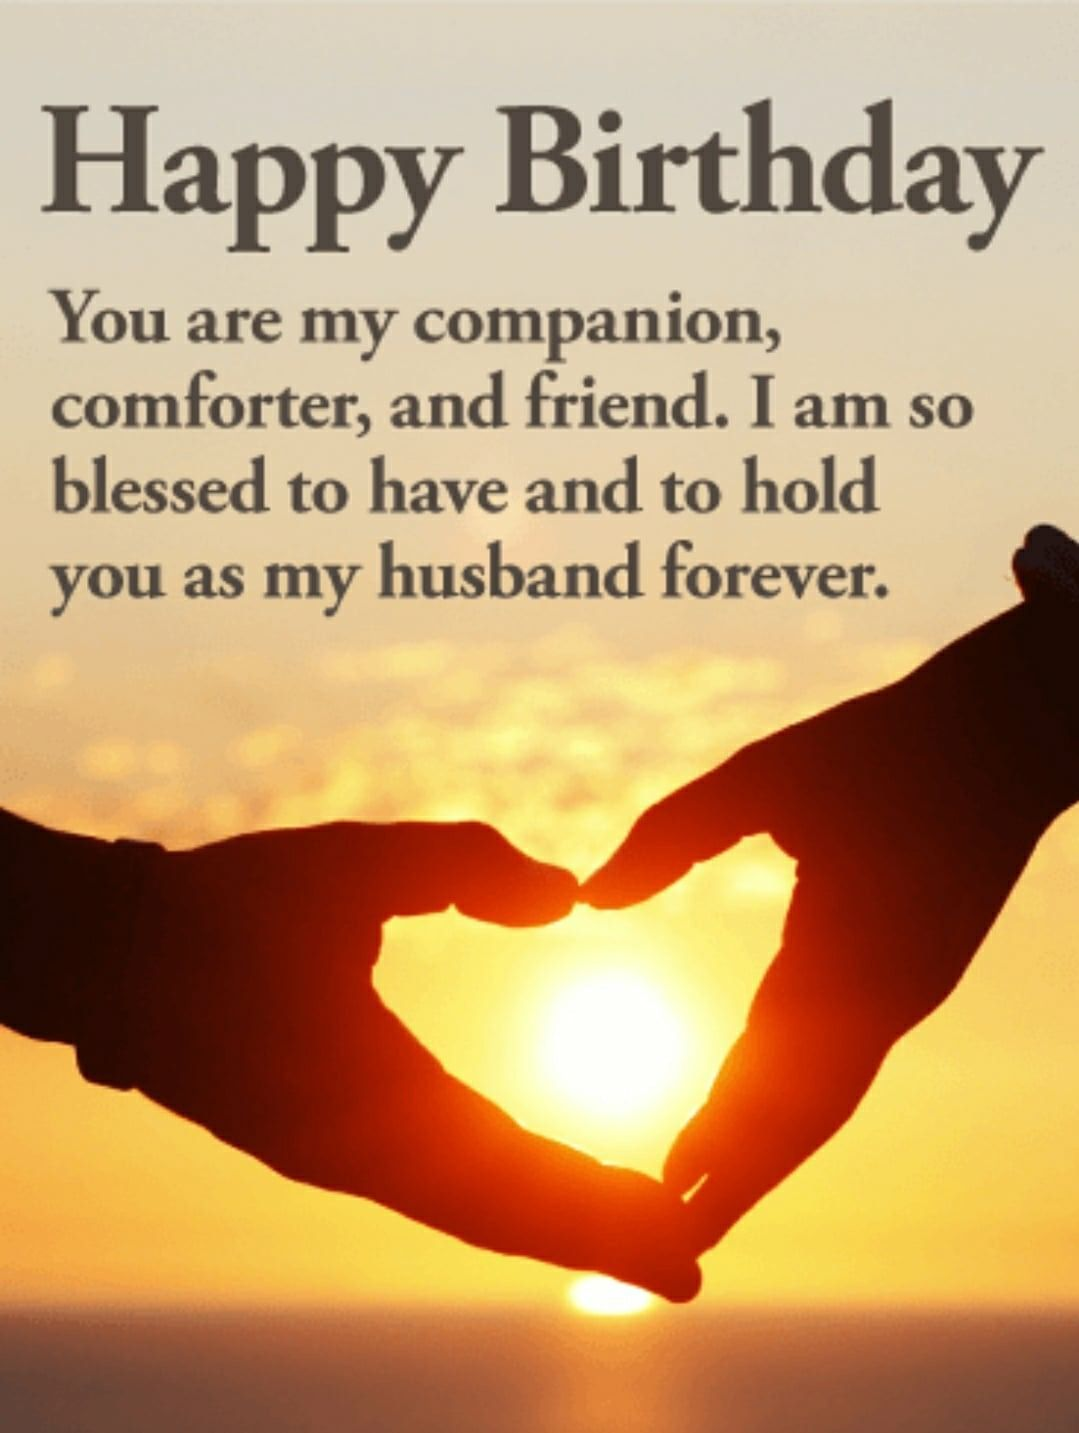 Birthday Wishes For Husband With Music : birthday, wishes, husband, music, Birthday, Wishes, Husband, Music, Concept,, Latest, Articles,, Technology